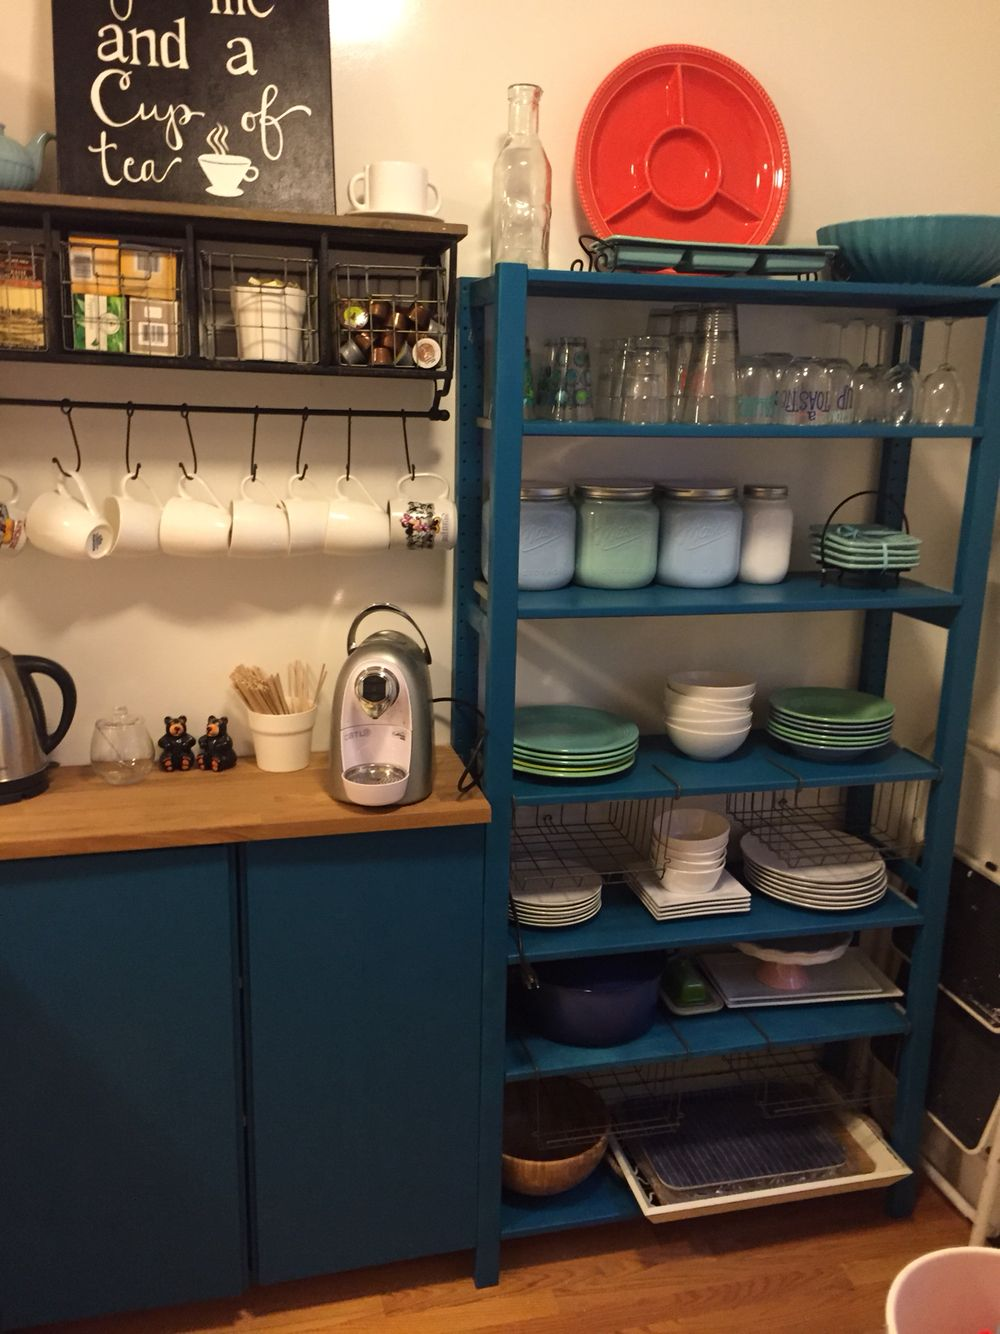 Ikea Ivar Küche Image Result For Ivar Shelving Unit Hack Kitchen In 2018